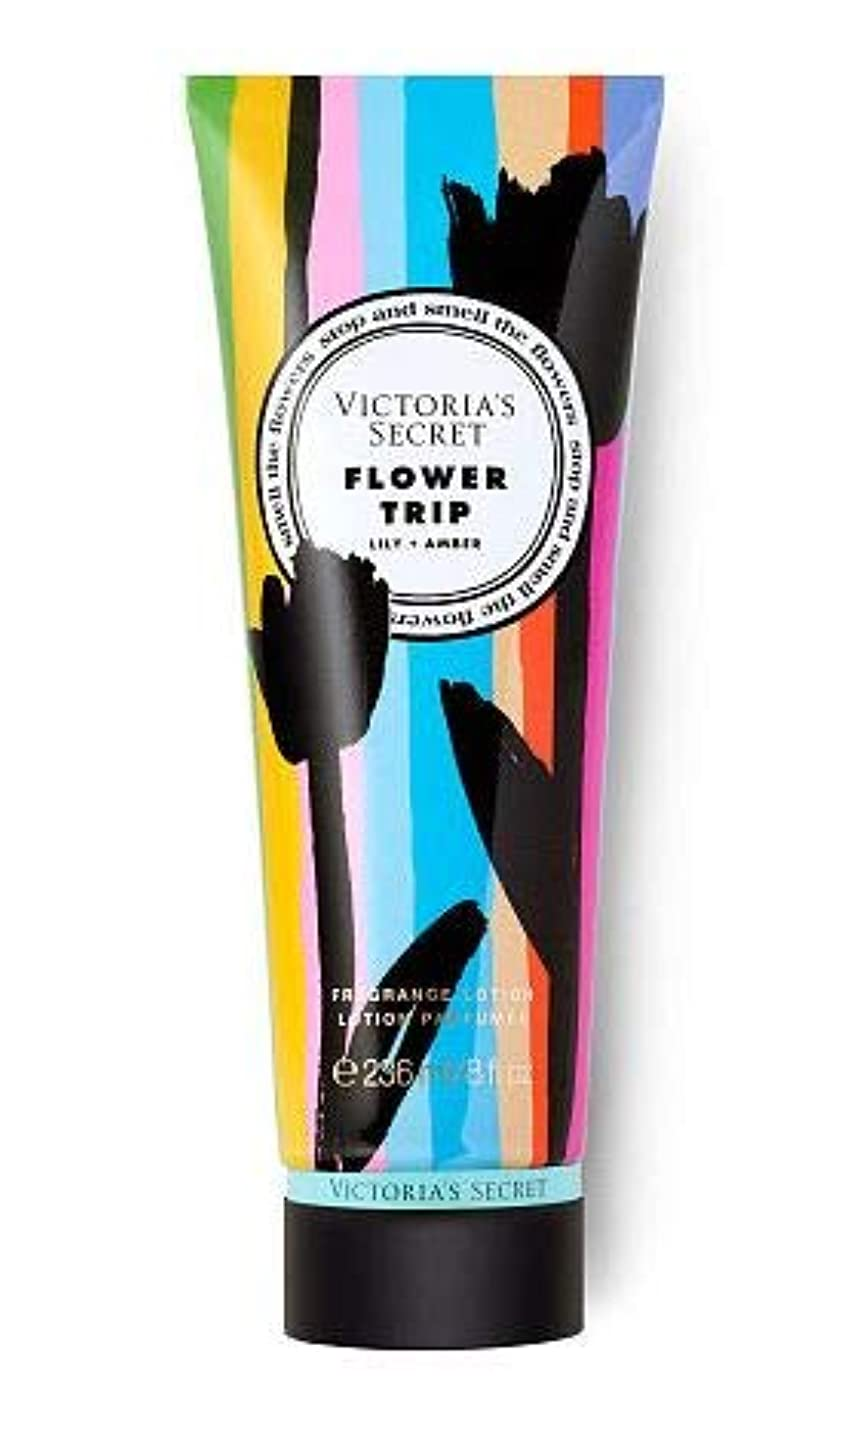 記憶に残る典型的な同等のVICTORIA'S SECRET Flower Shop Fragrance Lotion Flower Trip